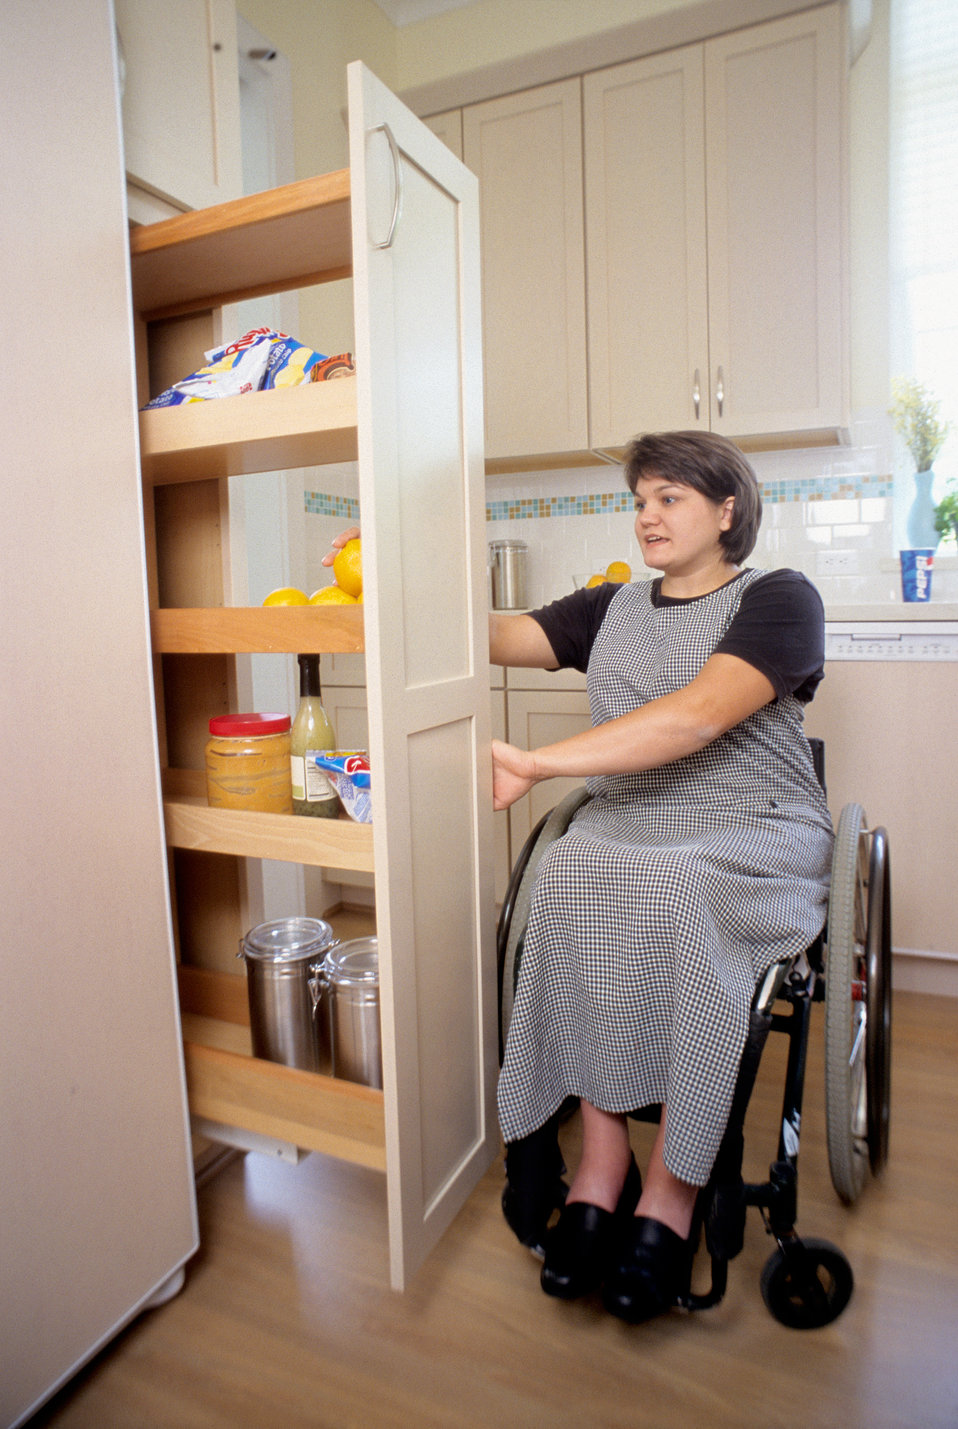 While seated in her wheelchair, in this 2000 image, an adult woman was shown as he was navigating the contents of a kitchen situated 'pull-o